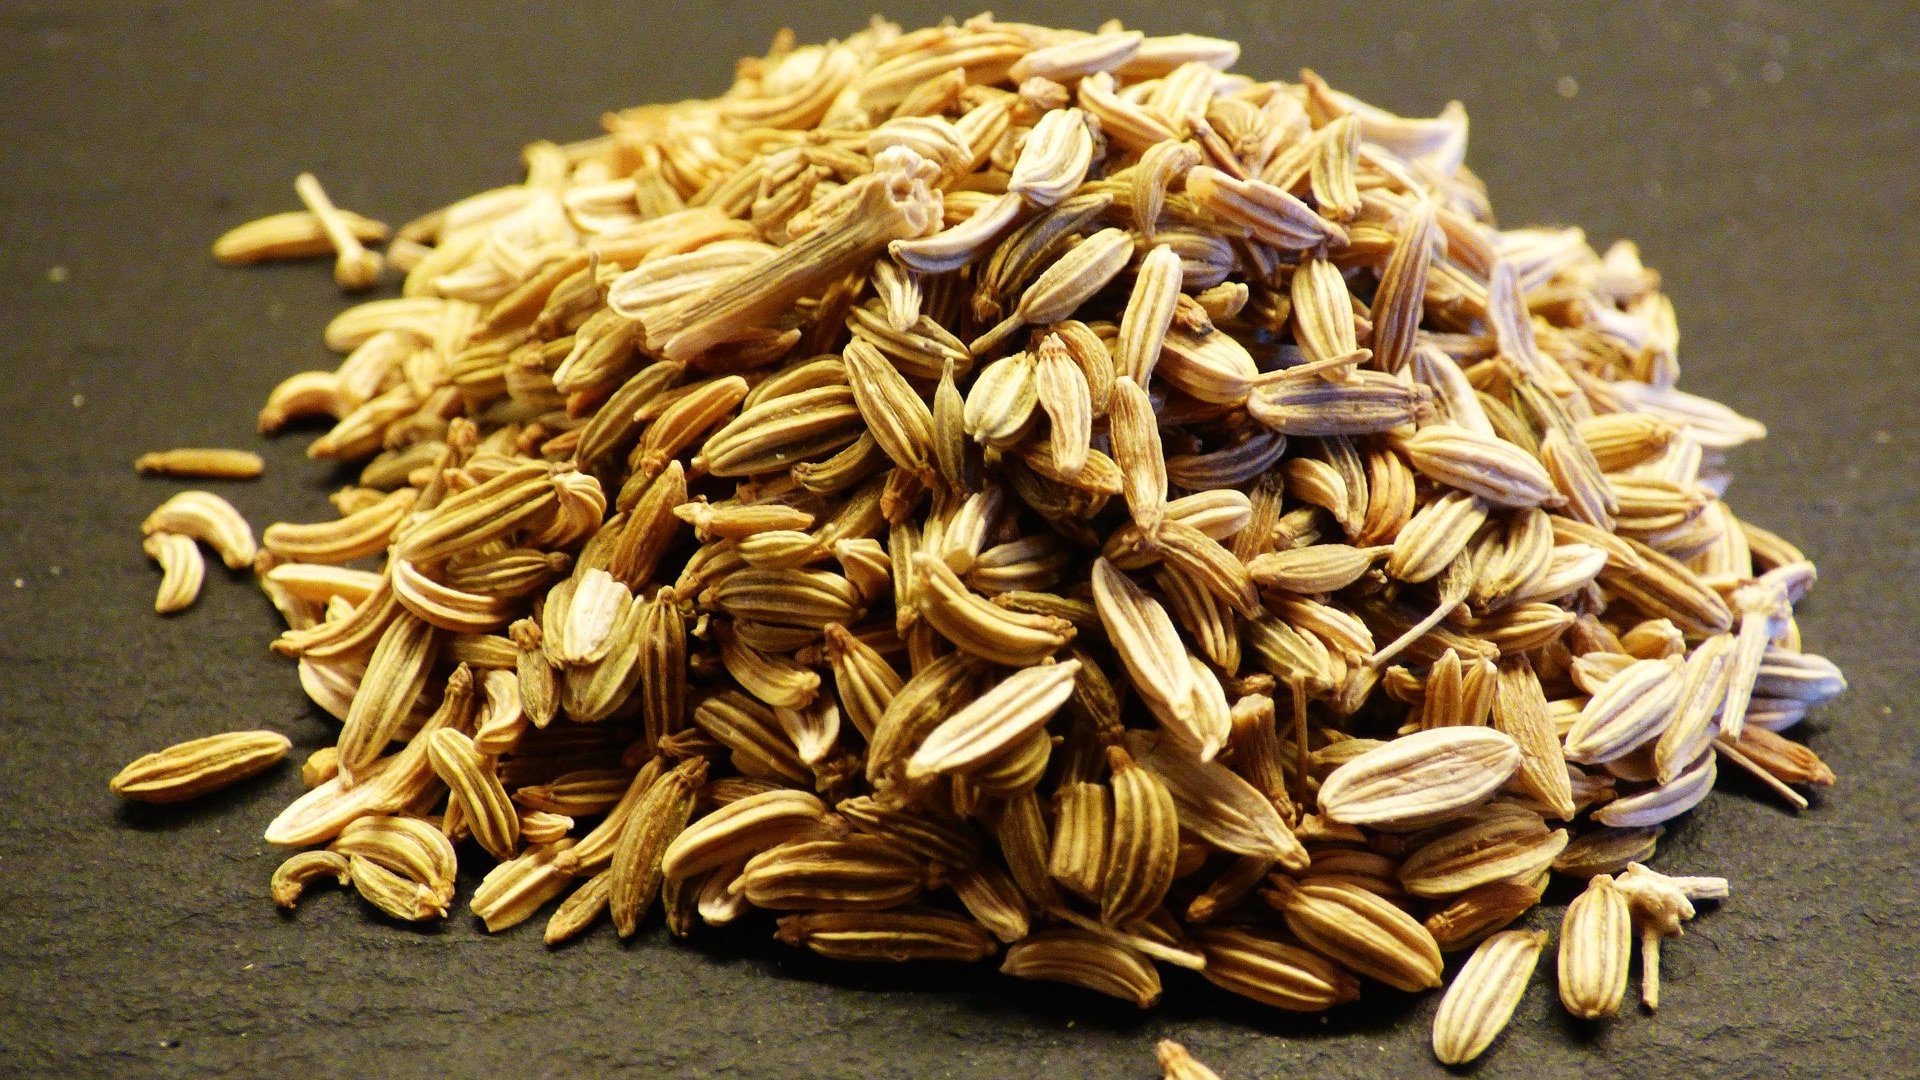 10. Fennel Seeds to Improve Athletic Performance